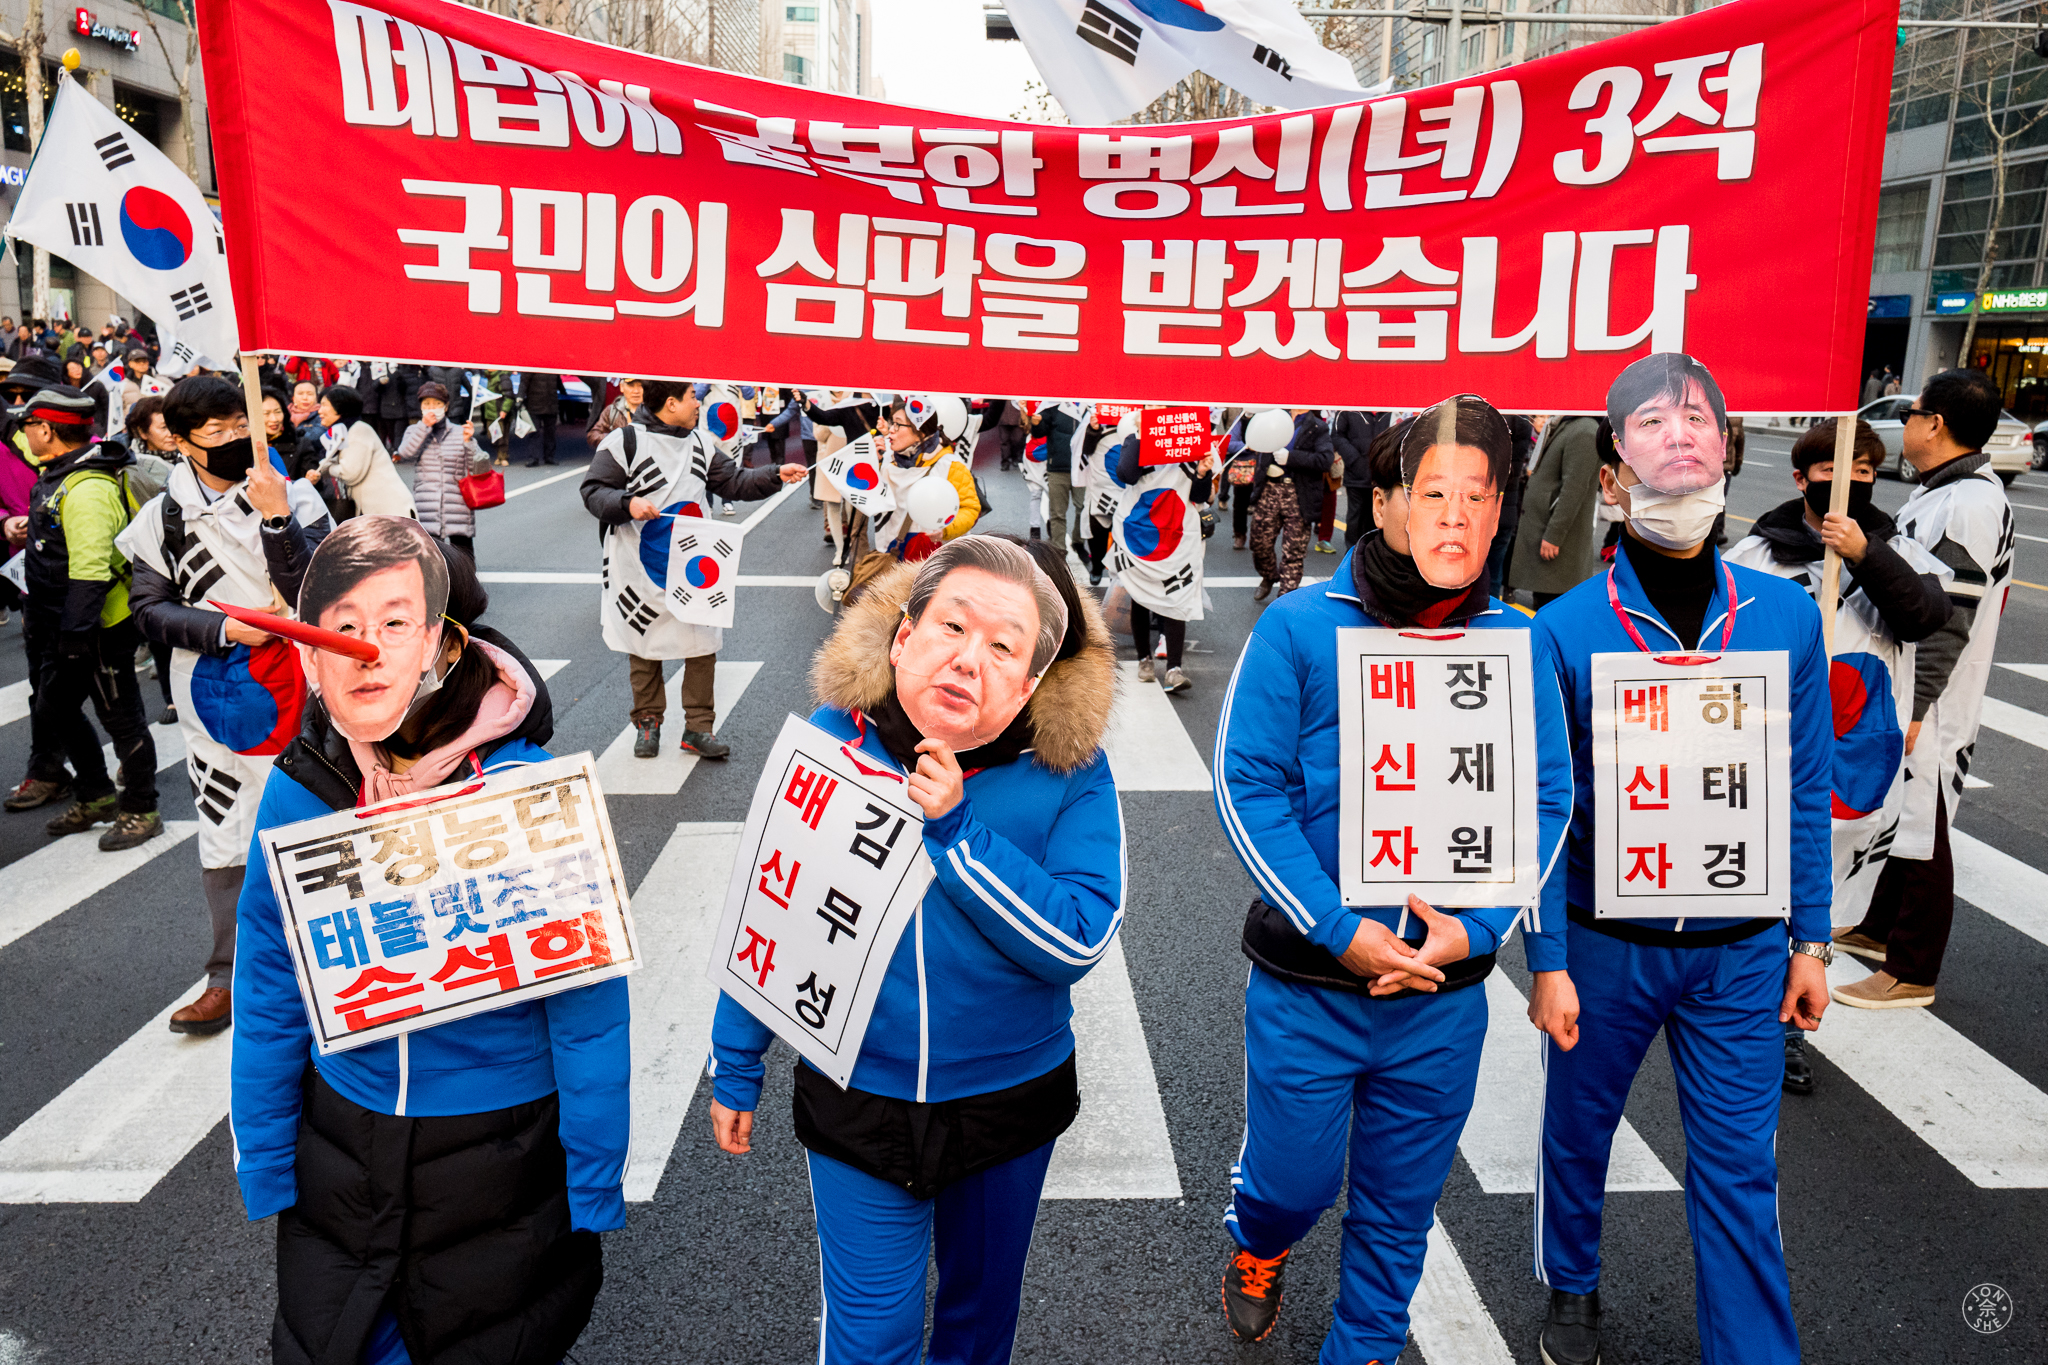 """""""Caricatures of Protest"""". Demonstrators dress in caricatures of allegedly corrupt officials during a mass rally to both call for and against President Park to be ousted from office for her alleged role in a corruption scandal. Seoul, South Korea. January 2017. © Jon She. Leica Q (Typ 116), Leica Summilux 28mm f/1.7 ASPH (FLE)."""